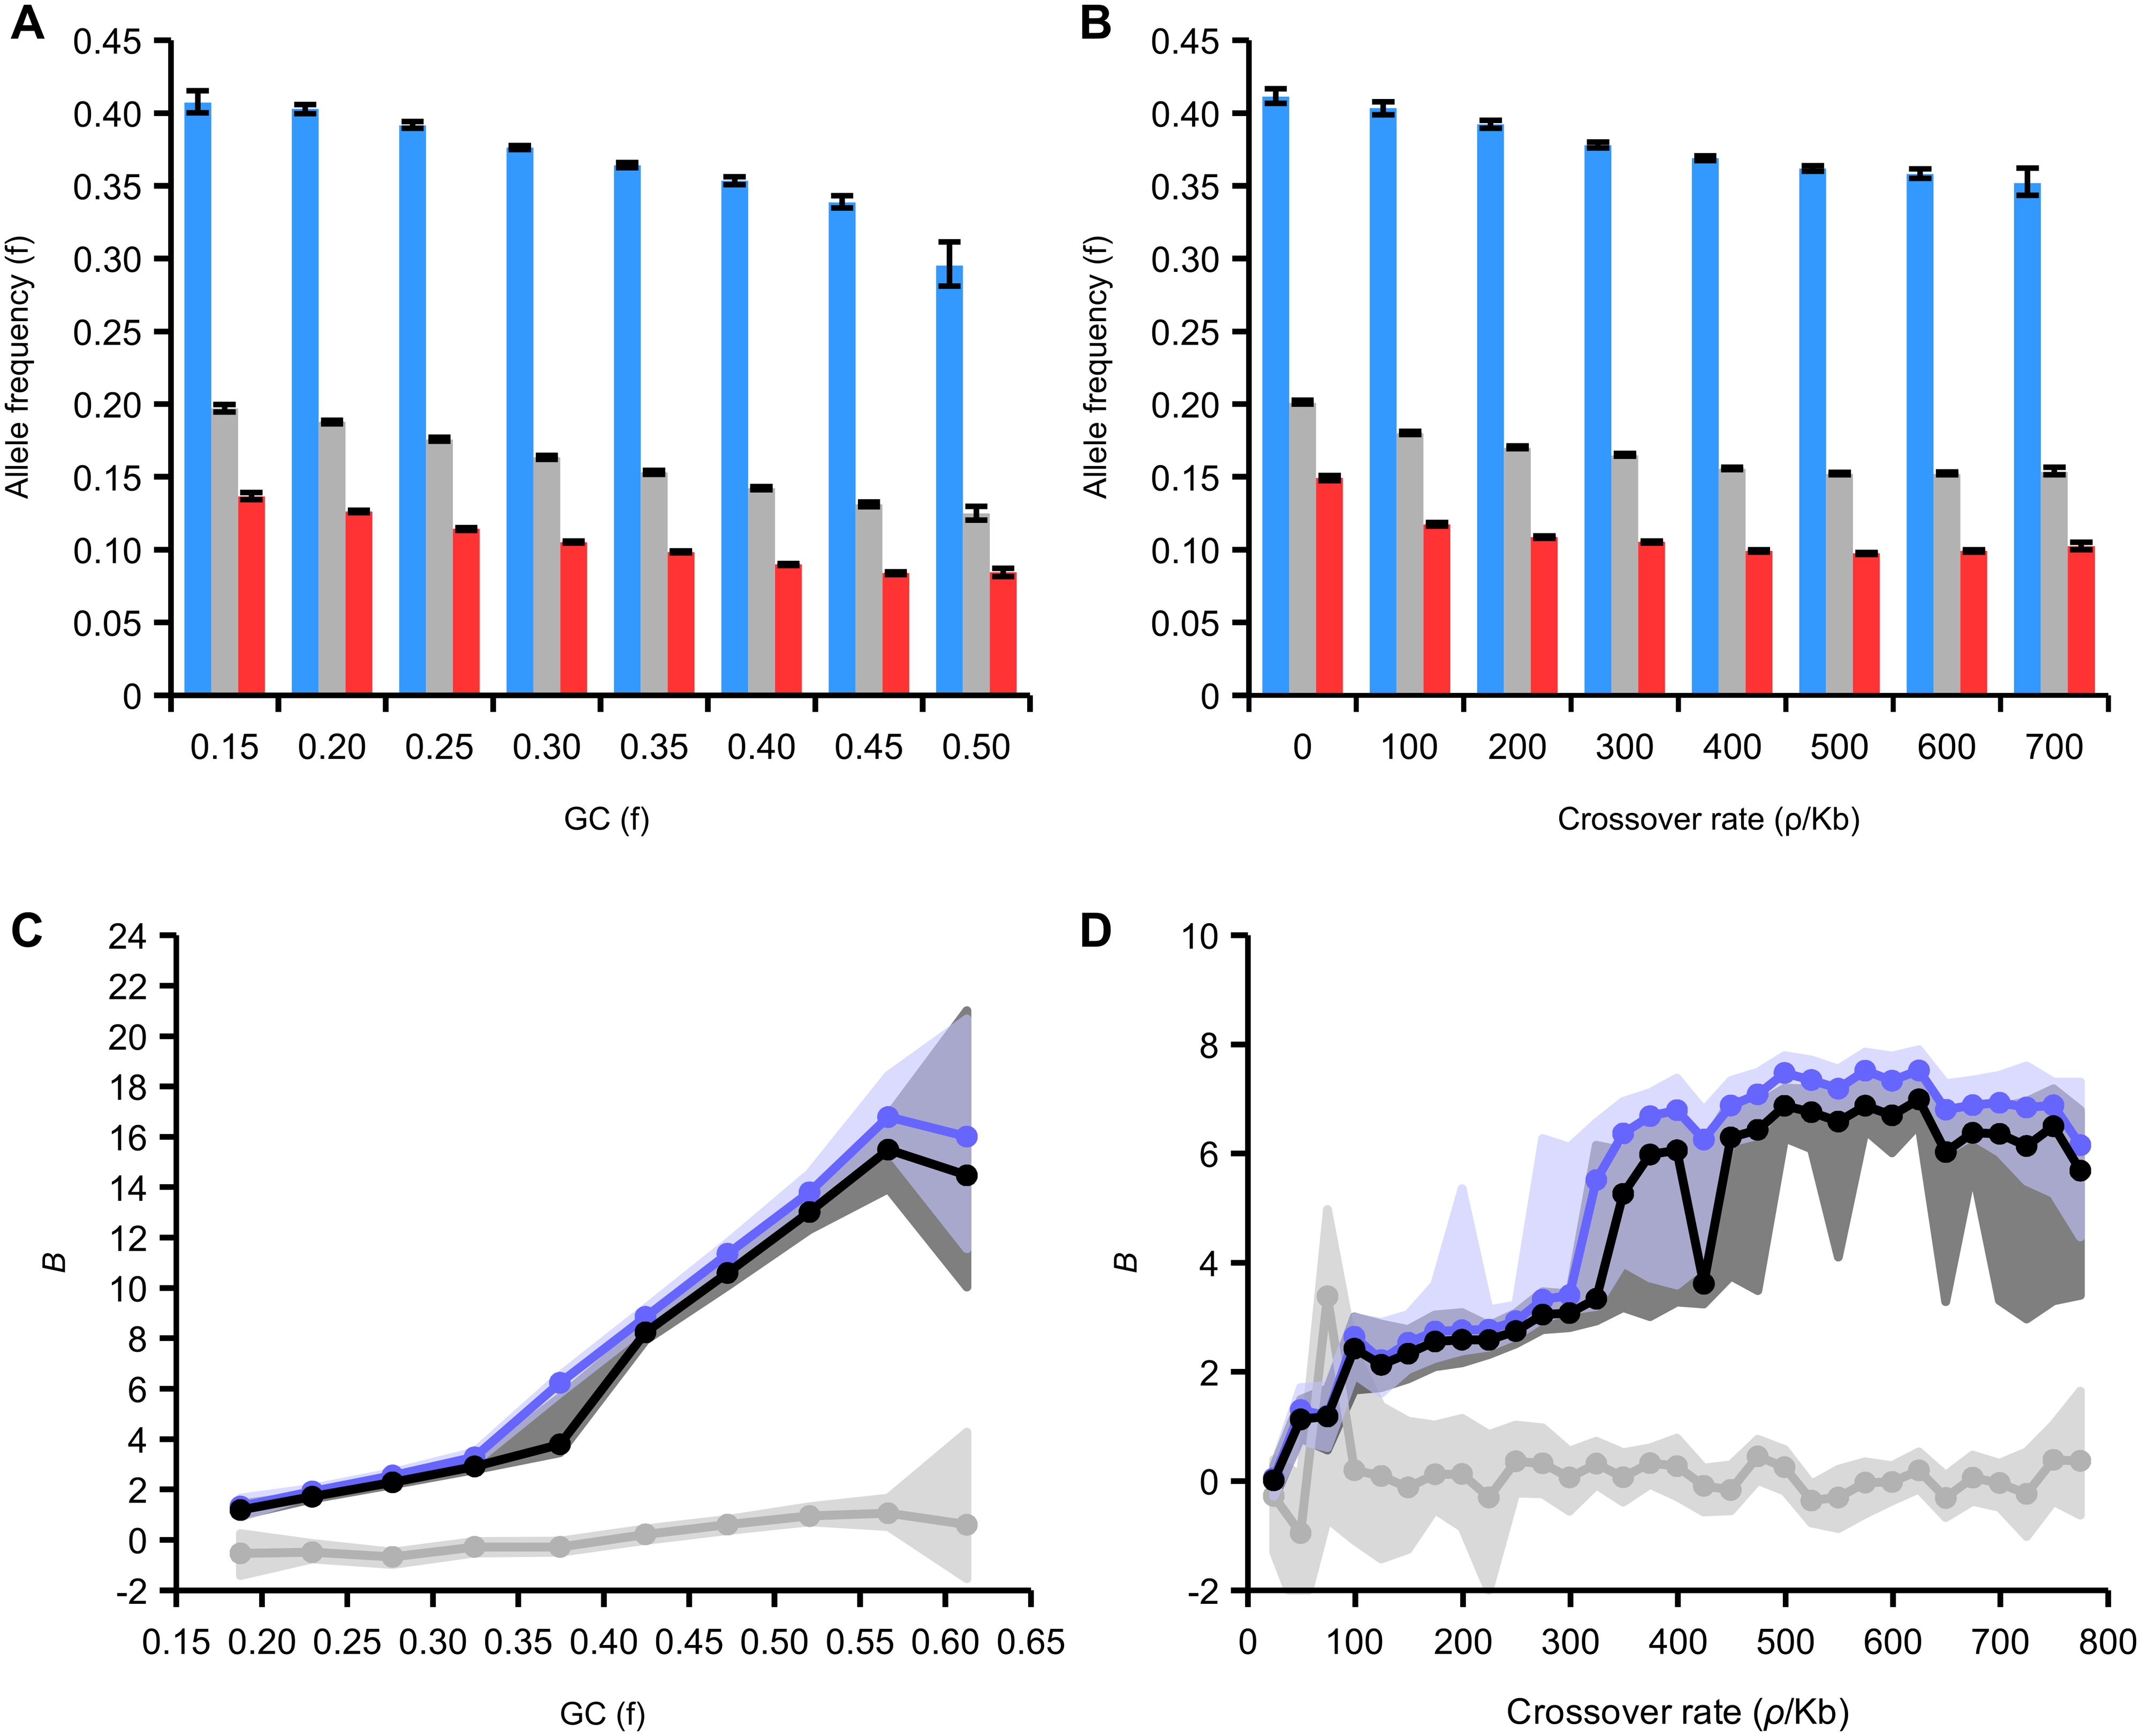 Effect of GC content and recombination on derived allele frequencies in intergenic regions.